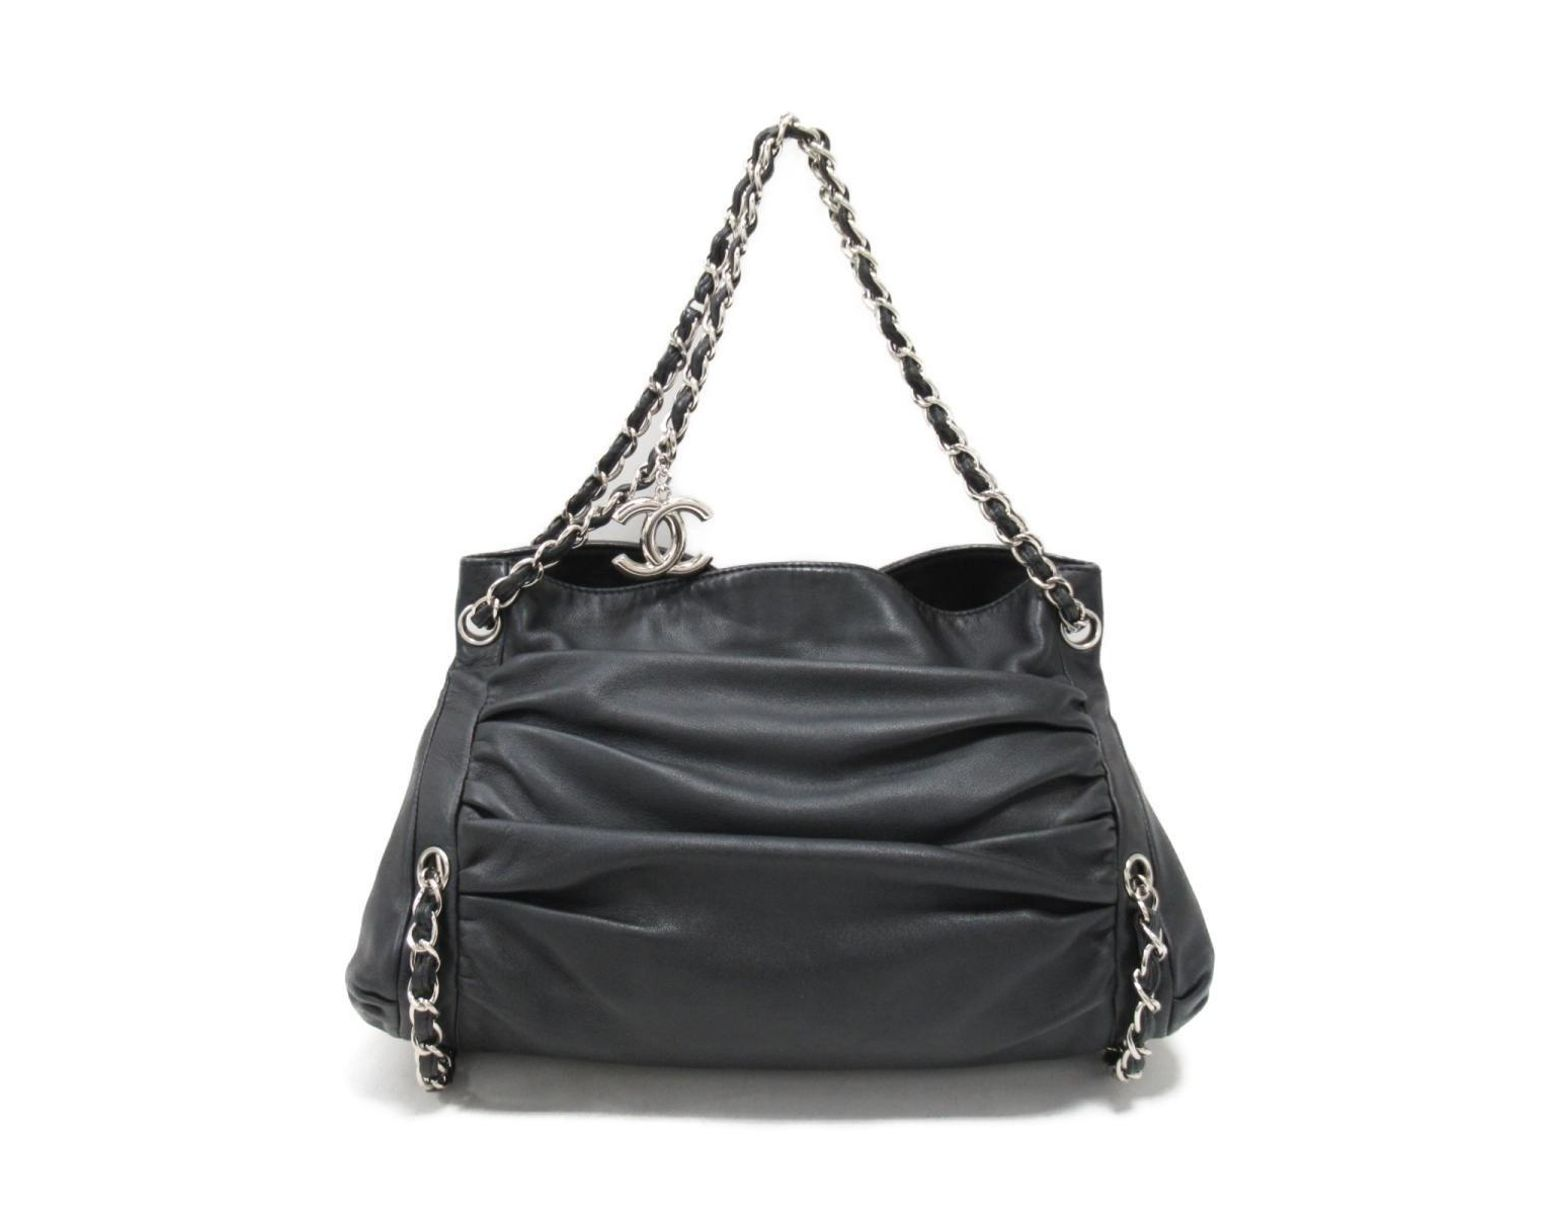 3c046a68b13597 Chanel Auth Luxury Line Chain Shoulder Hand Bag Black Leather Used Vintage  in Black - Lyst